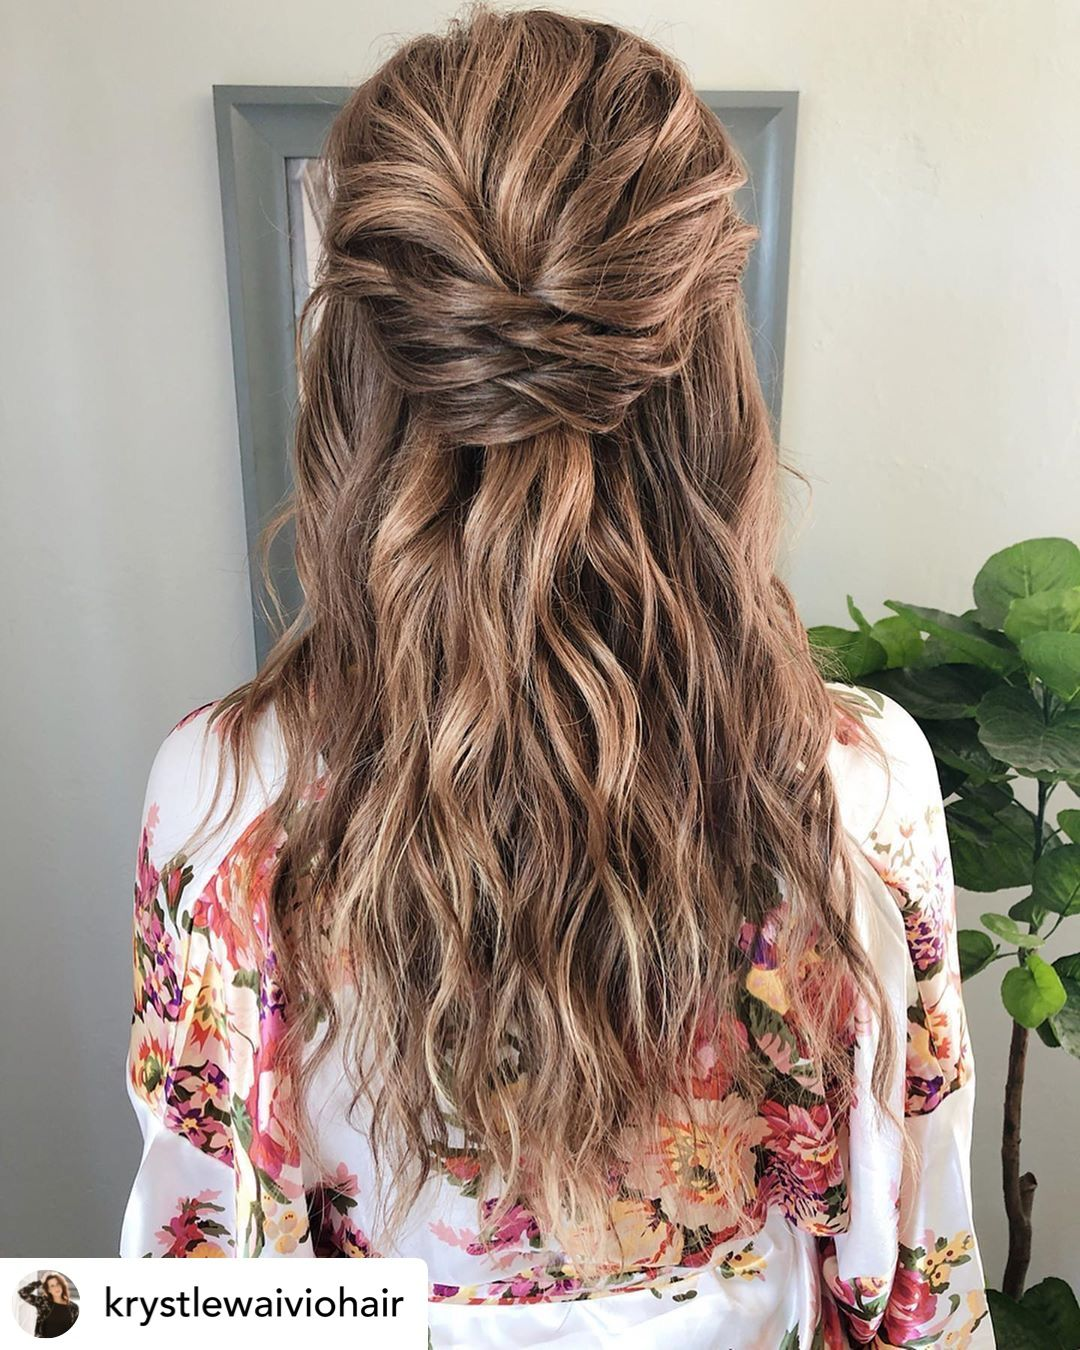 15 Ridiculously Cute Summer Hairstyles Step By Step Tutorials Included Easy Summer Hairstyles Summer Hairstyles Perfect Summer Hair